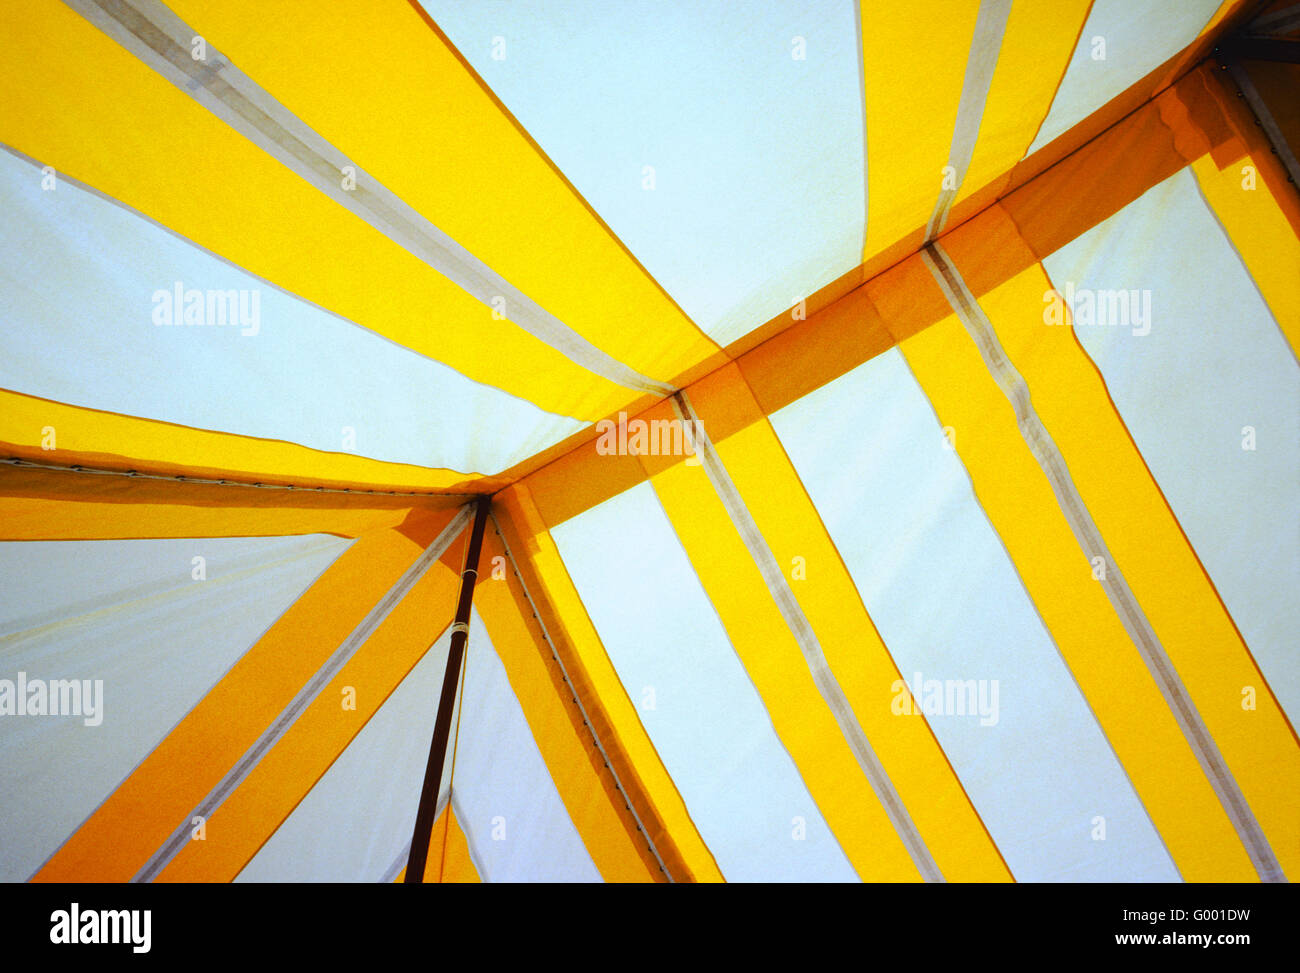 Graphic abstract view of the inside of a large yellow & white event tent - Stock Image